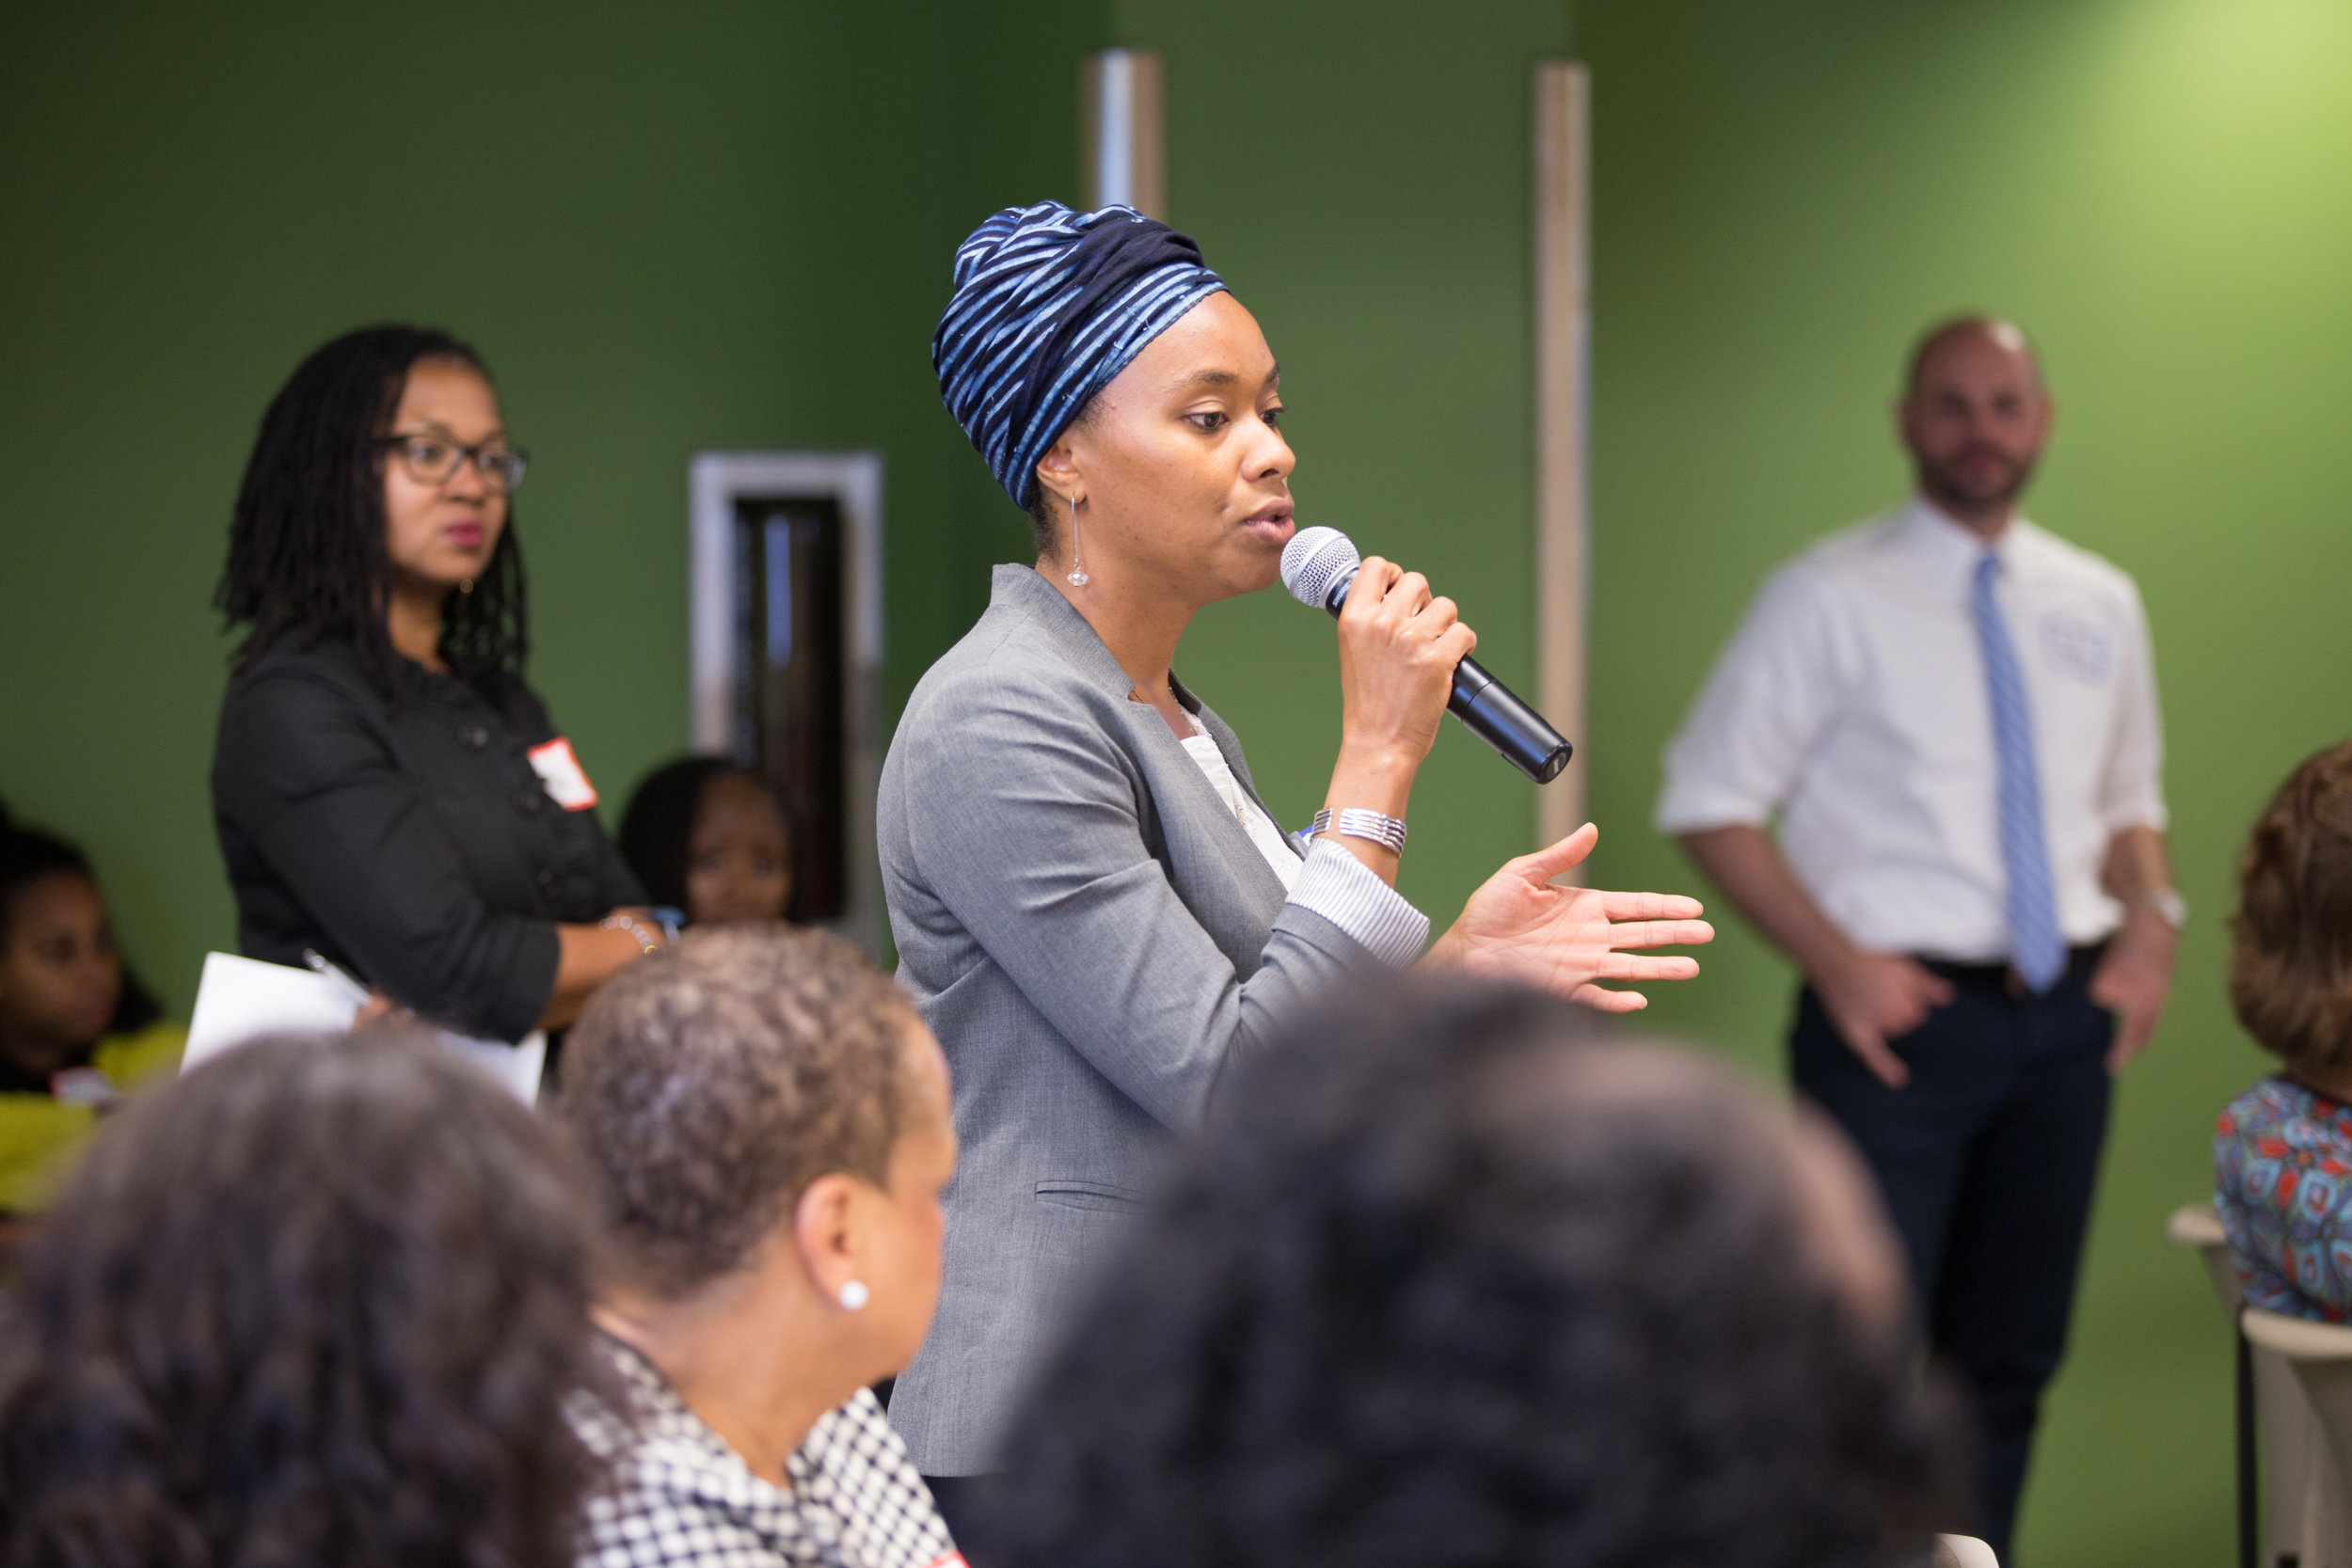 - A community member speaks at a community conversation in Northern Virginia.Photo by AOTA Creative Group.